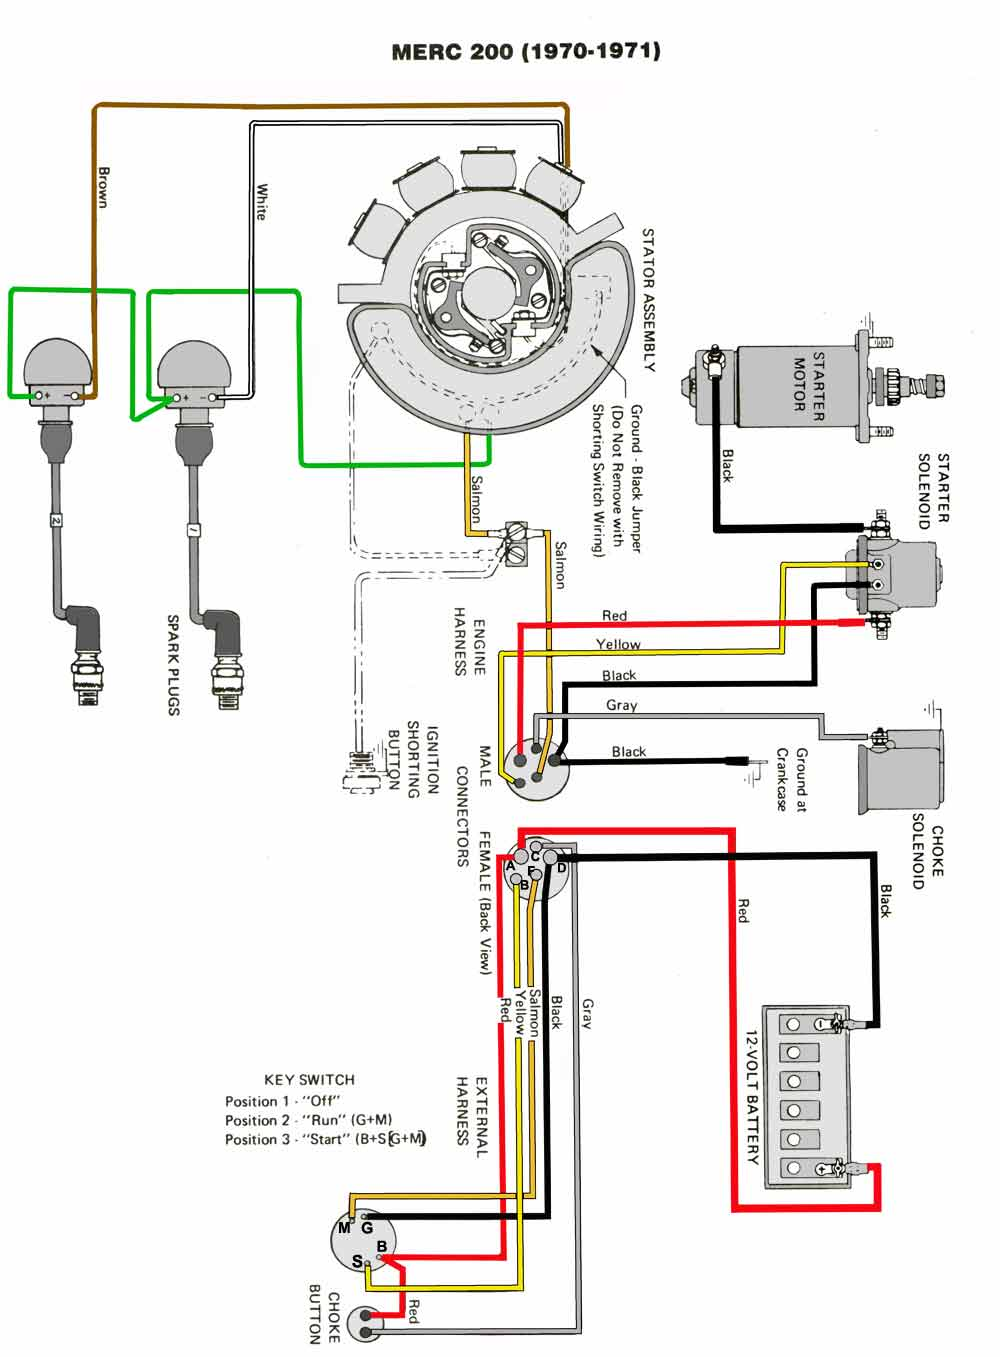 Astounding Mercury Marine Wiring Harness Diagram General Wiring Diagram Data Wiring Cloud Usnesfoxcilixyz